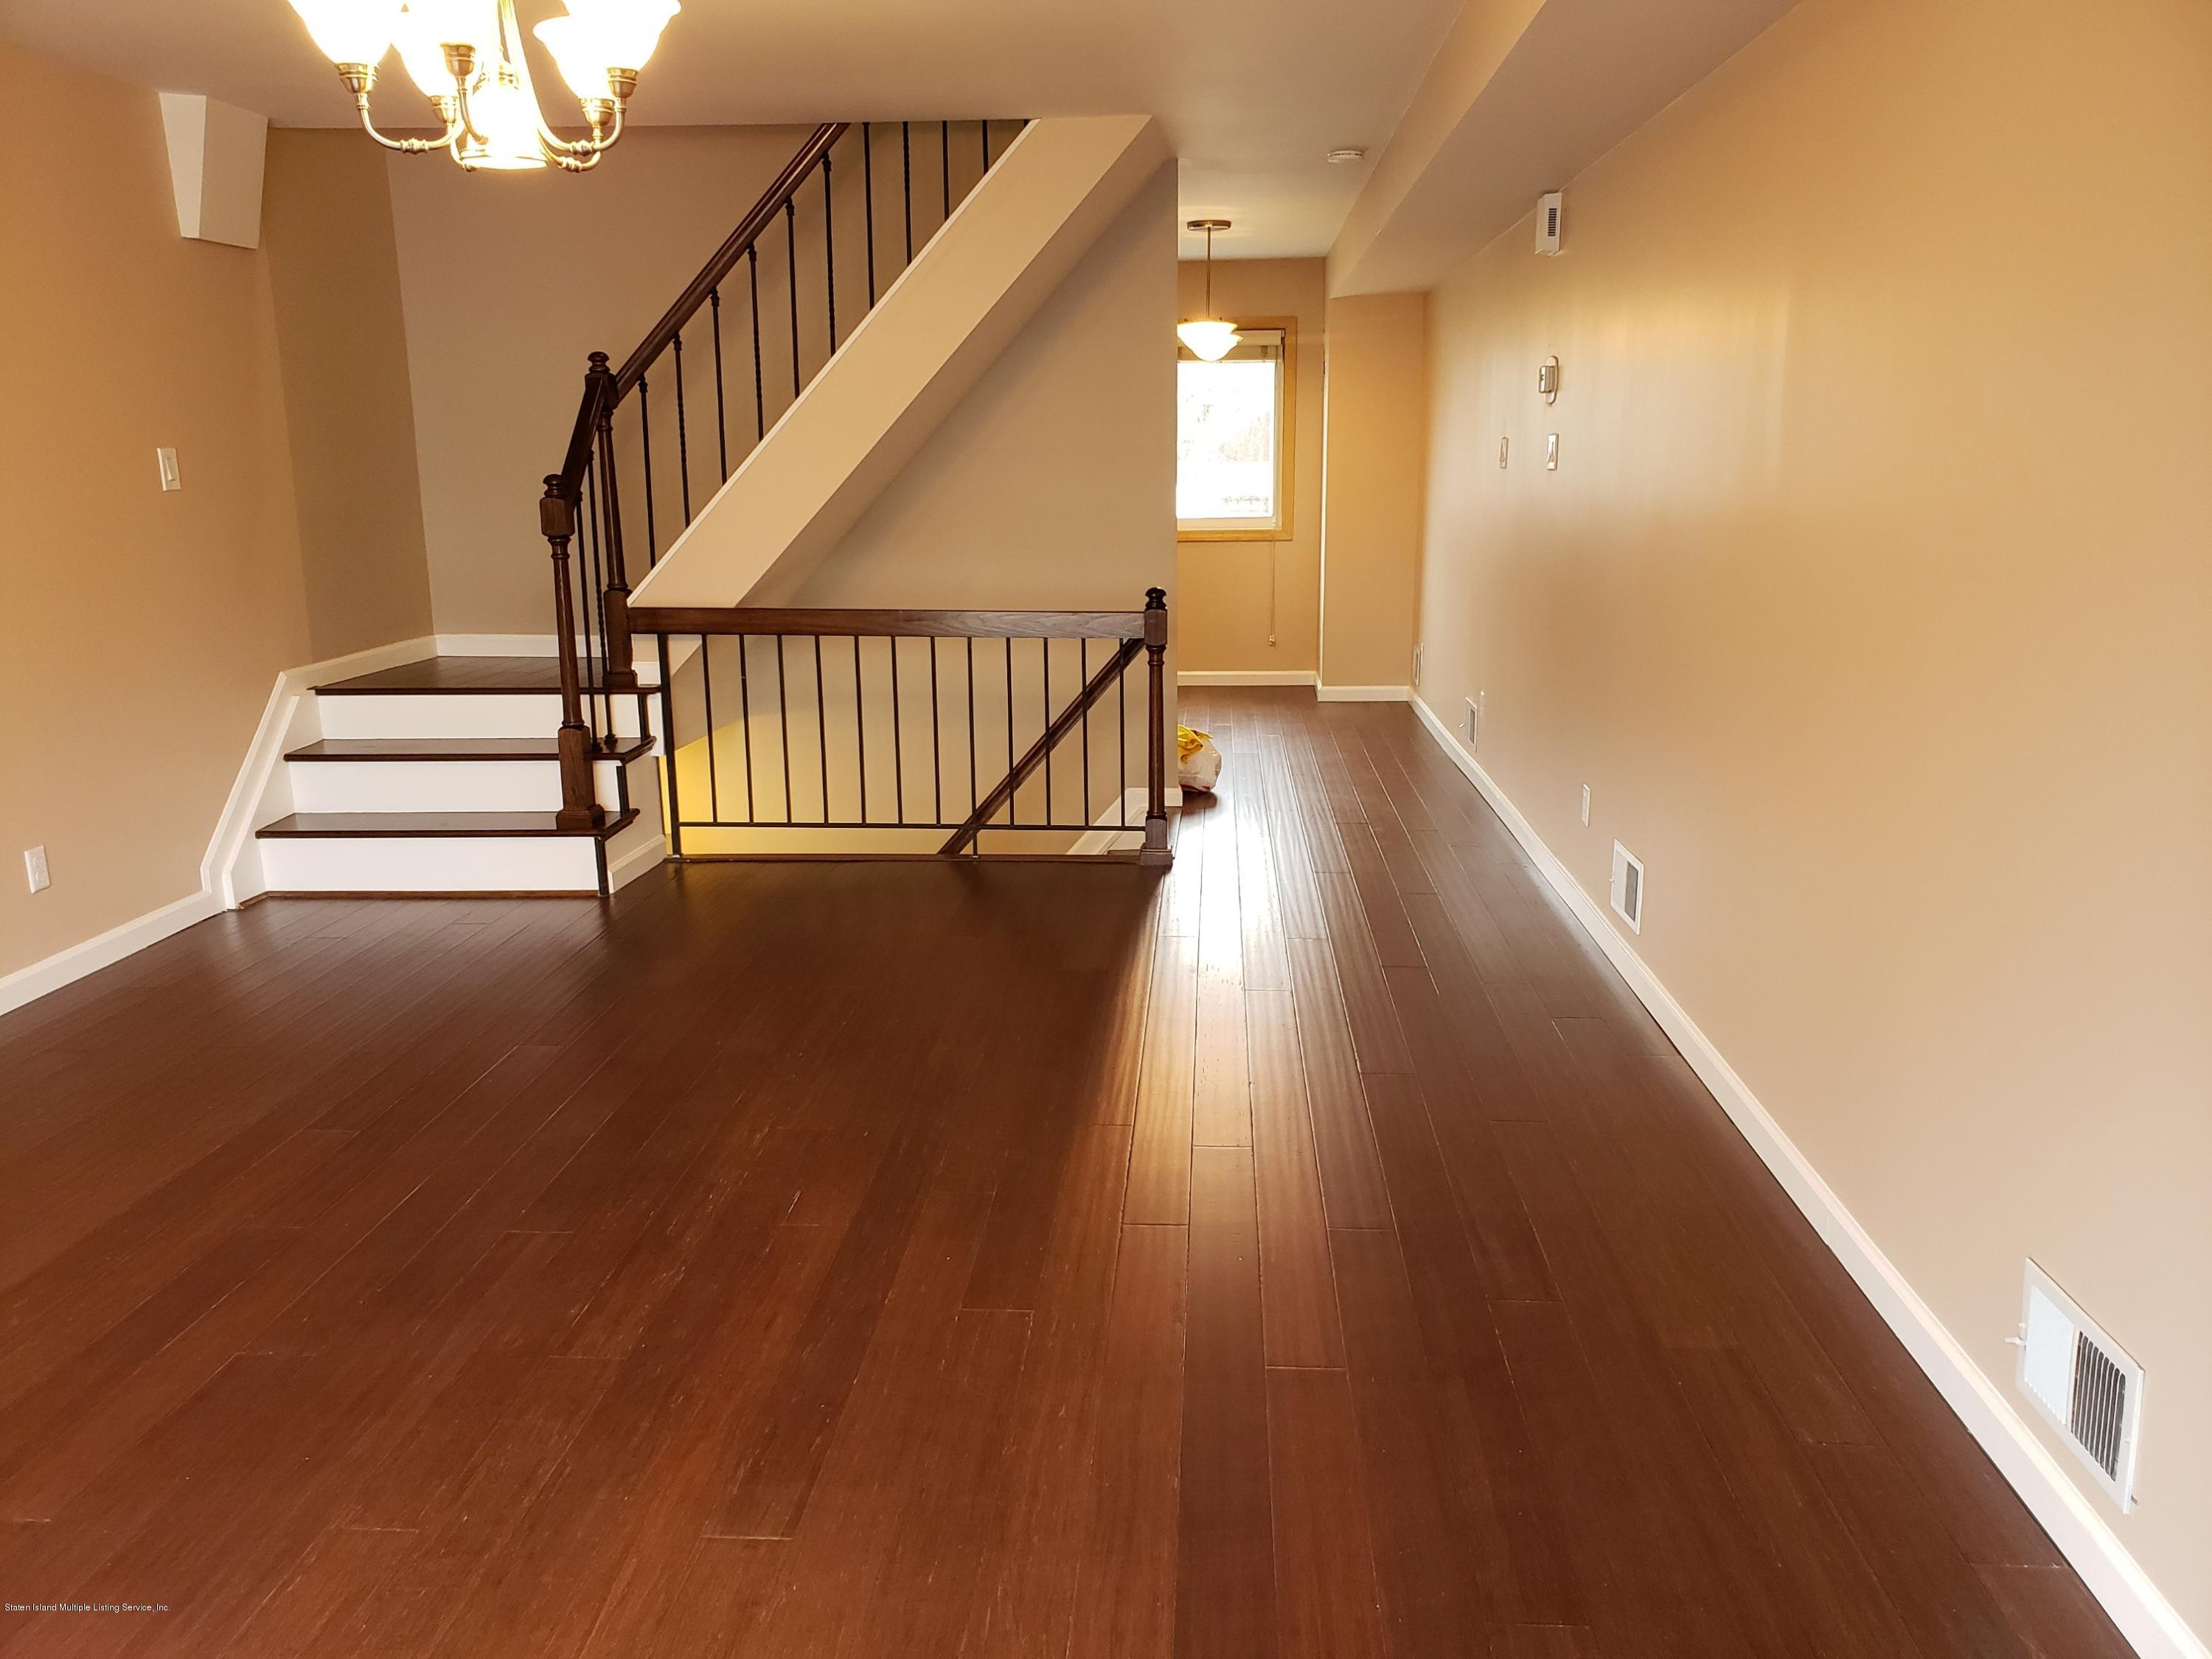 Single Family - Attached 31 Gail Court  Staten Island, NY 10306, MLS-1127035-3